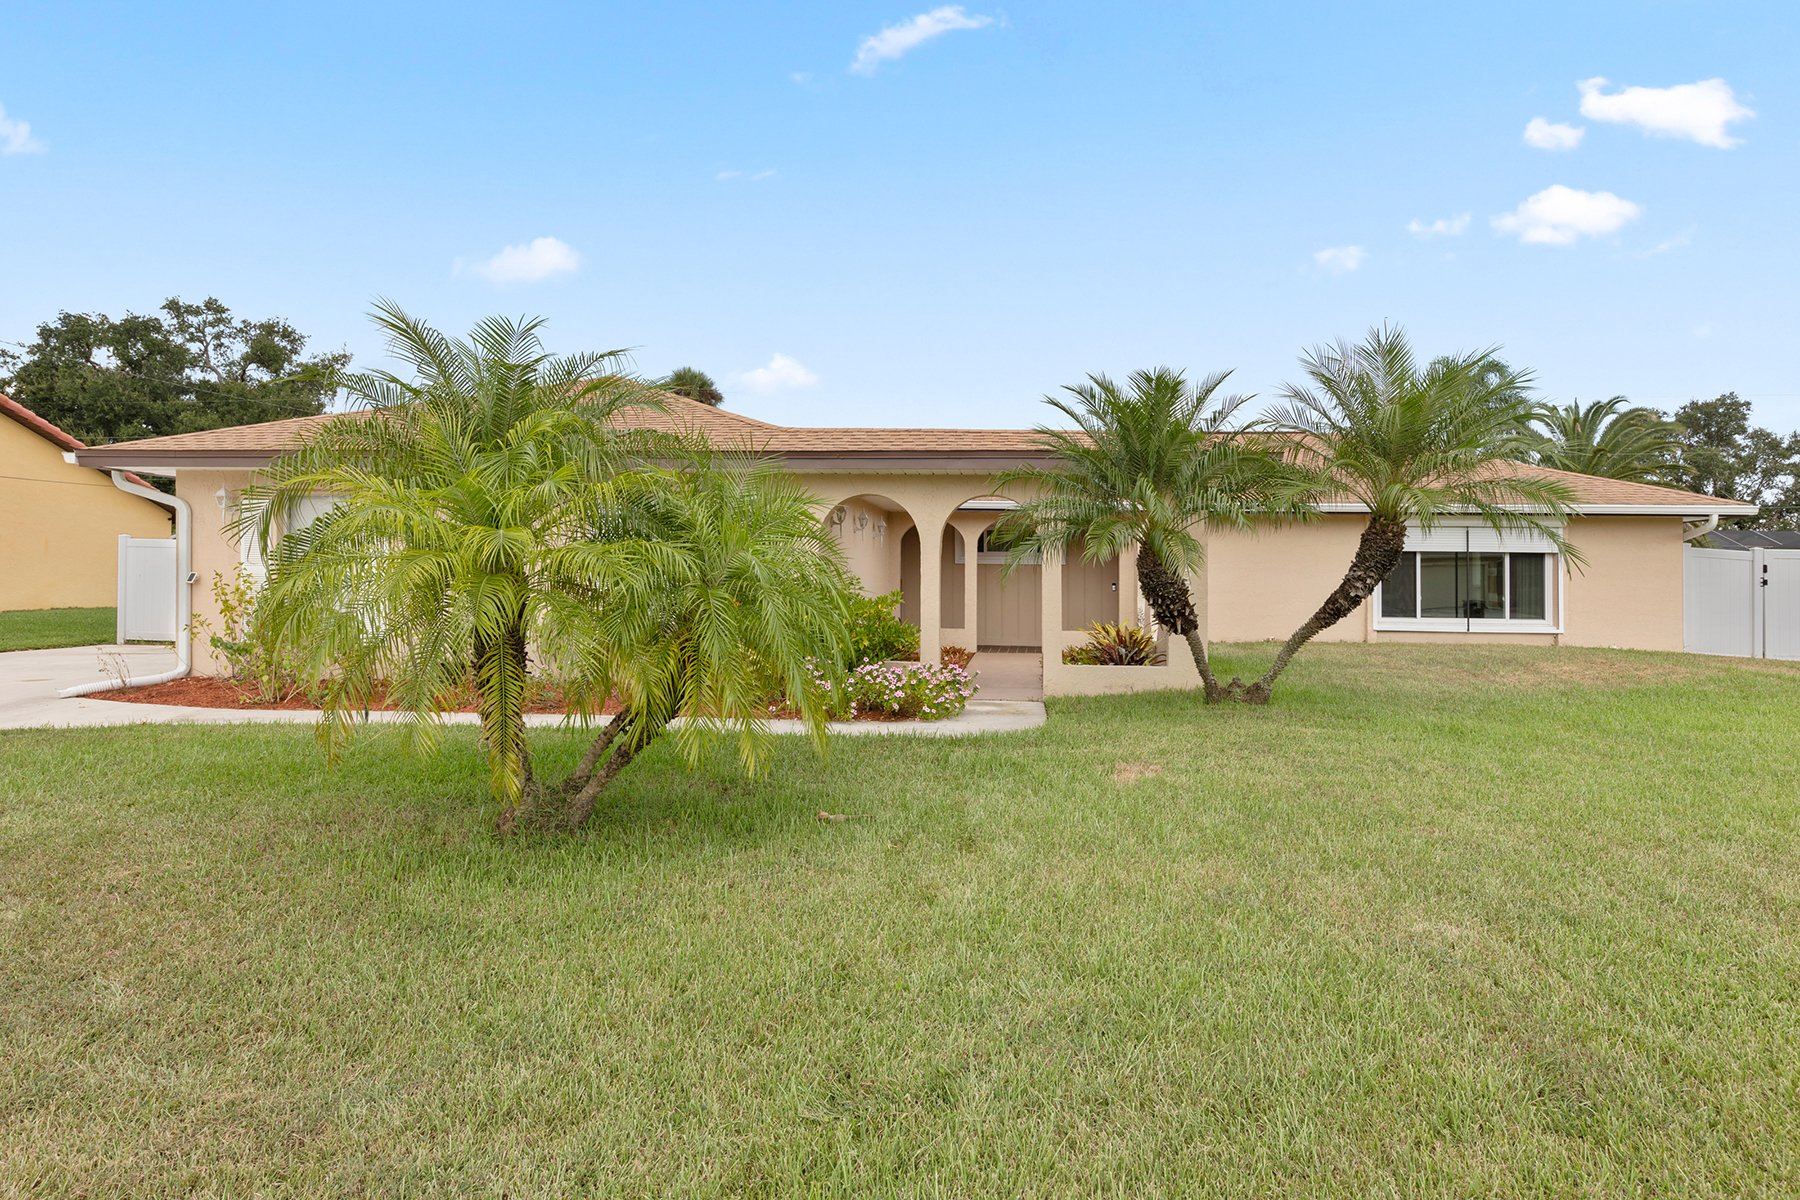 Single Family Homes for Sale at COUNTRY CLUB ESTATES 1733 Englewood Avenue Lehigh Acres, Florida 33936 United States